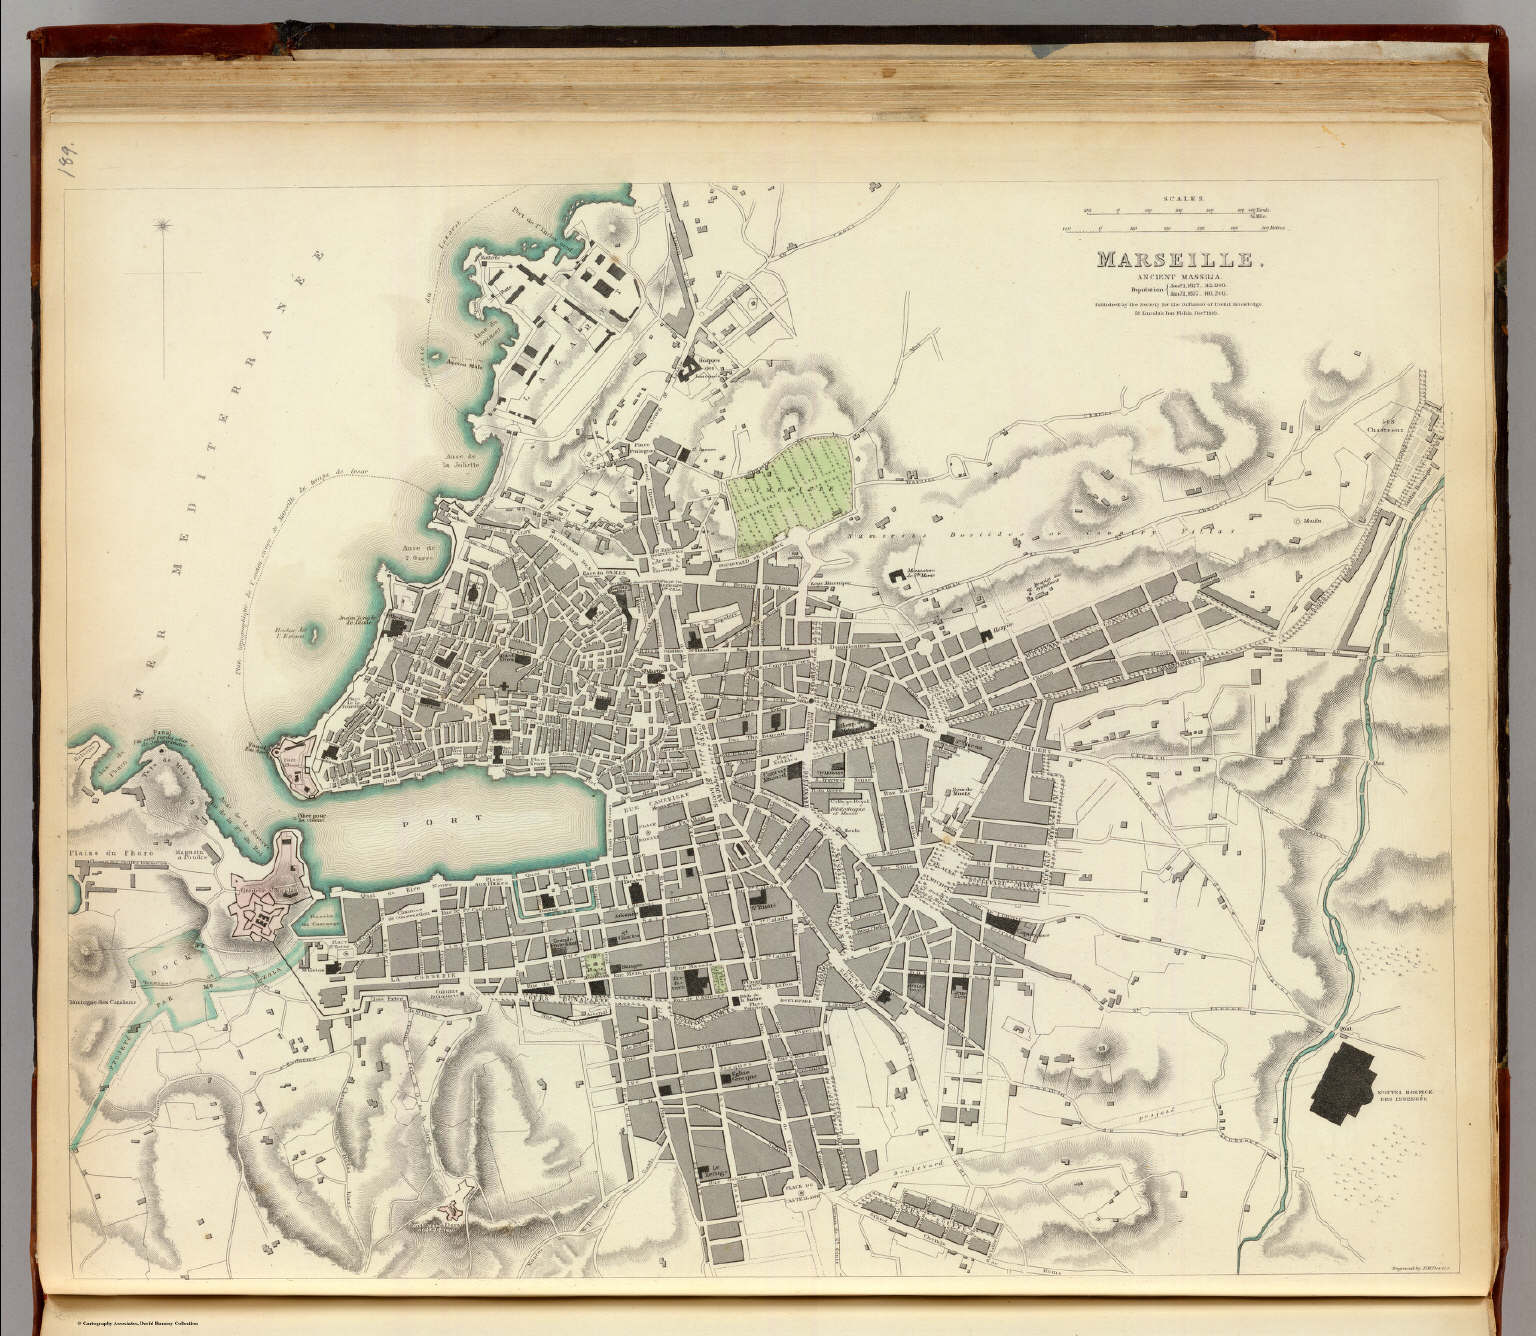 Marseille David Rumsey Historical Map Collection